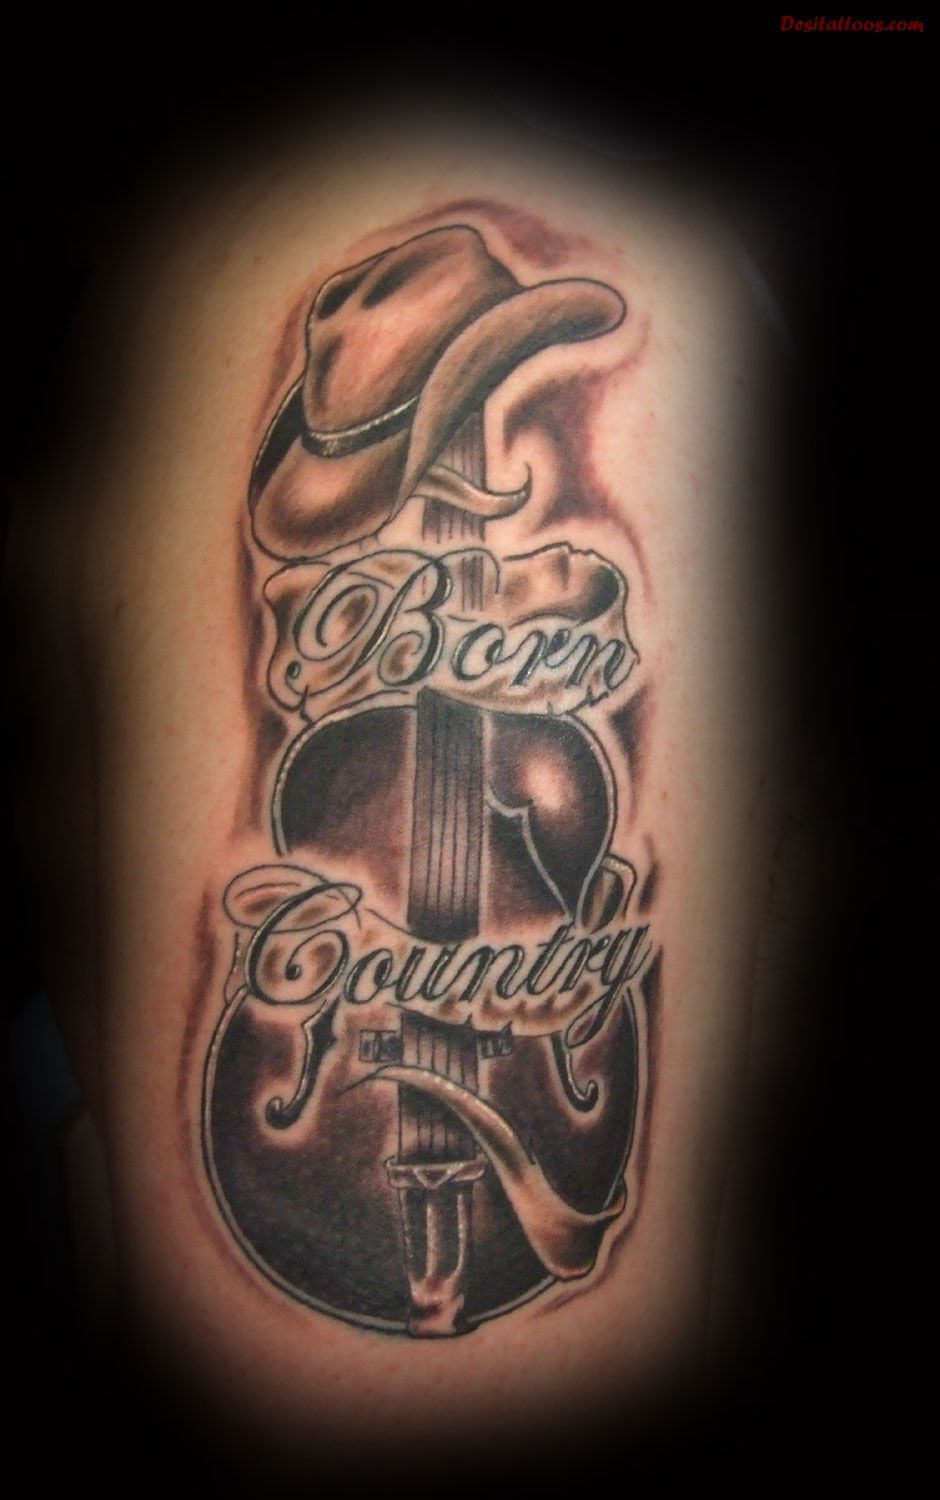 Country Girl Tattoos Back Tattoo S For Country Tattoo Designs For Girls Tattoo Designs For Girls Country Tattoos Tattoos